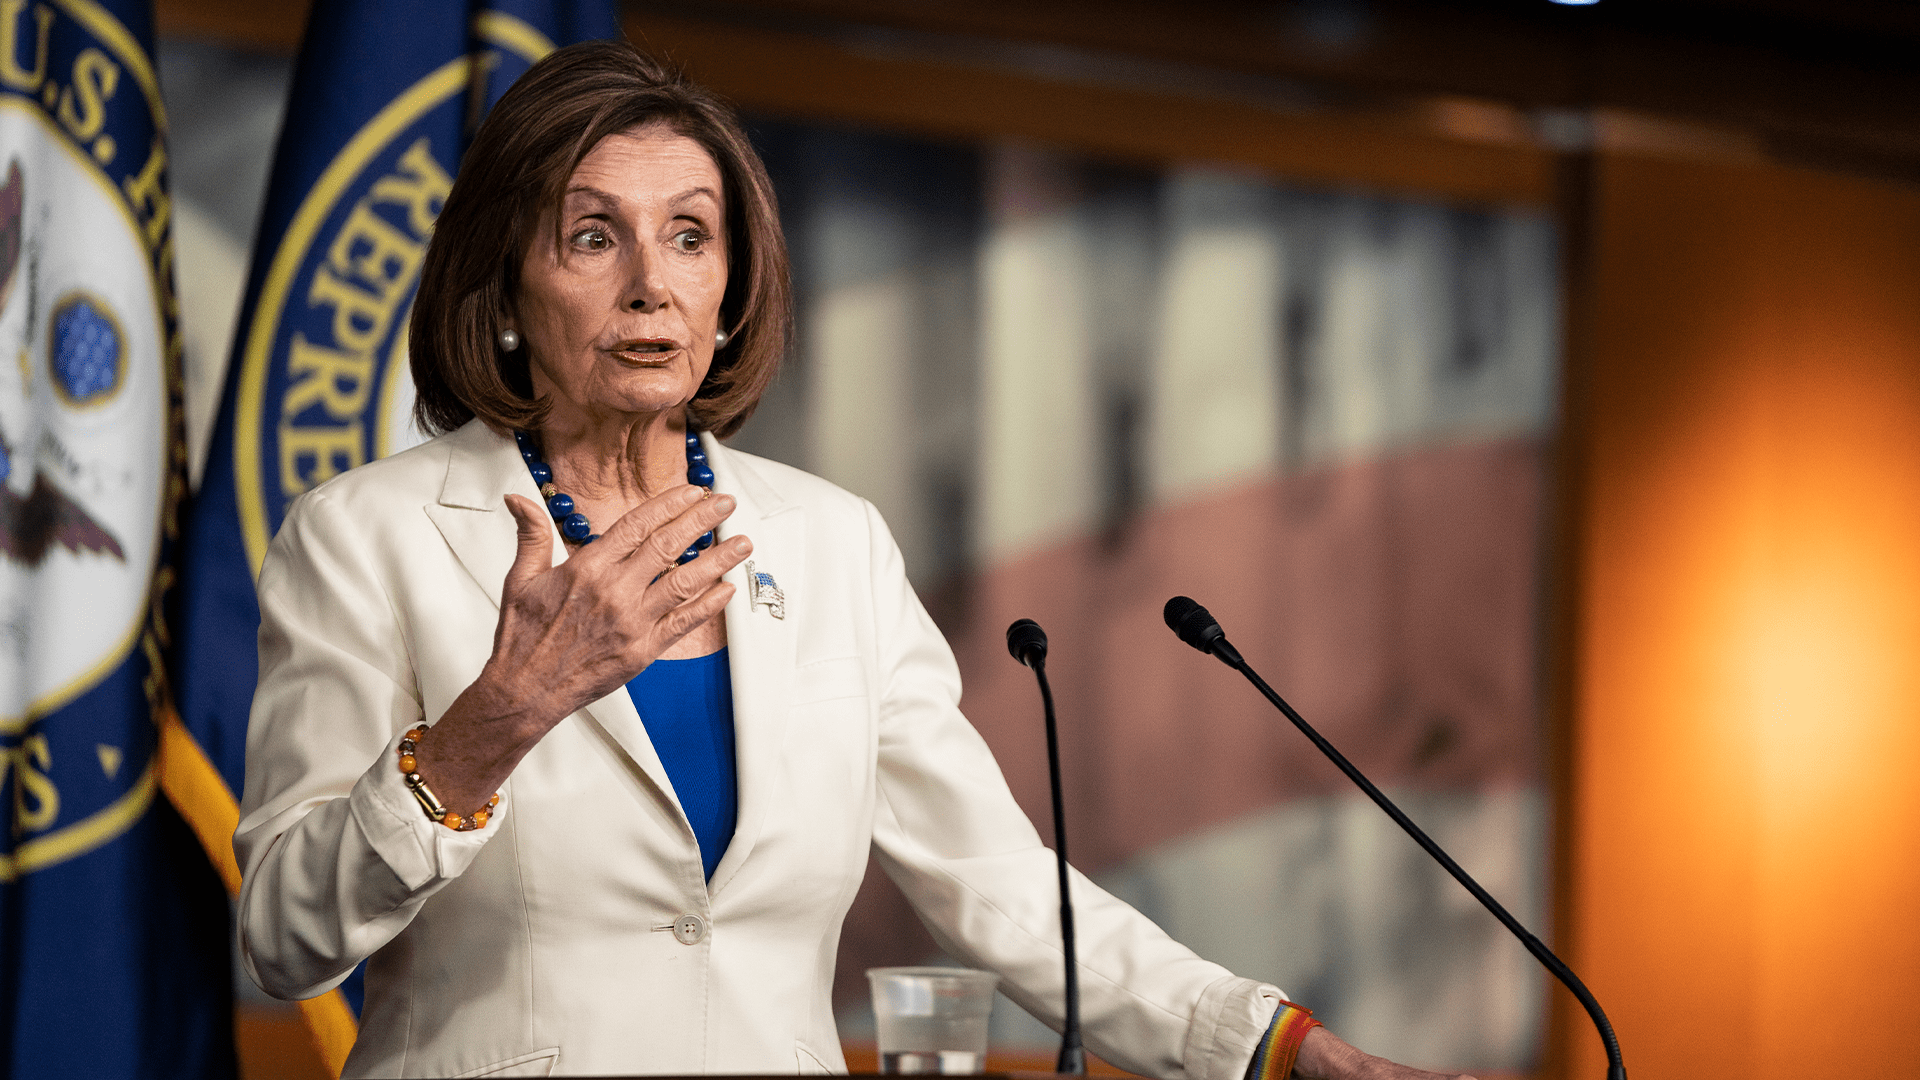 Pelosi: Evidence against Trump is 'clear'